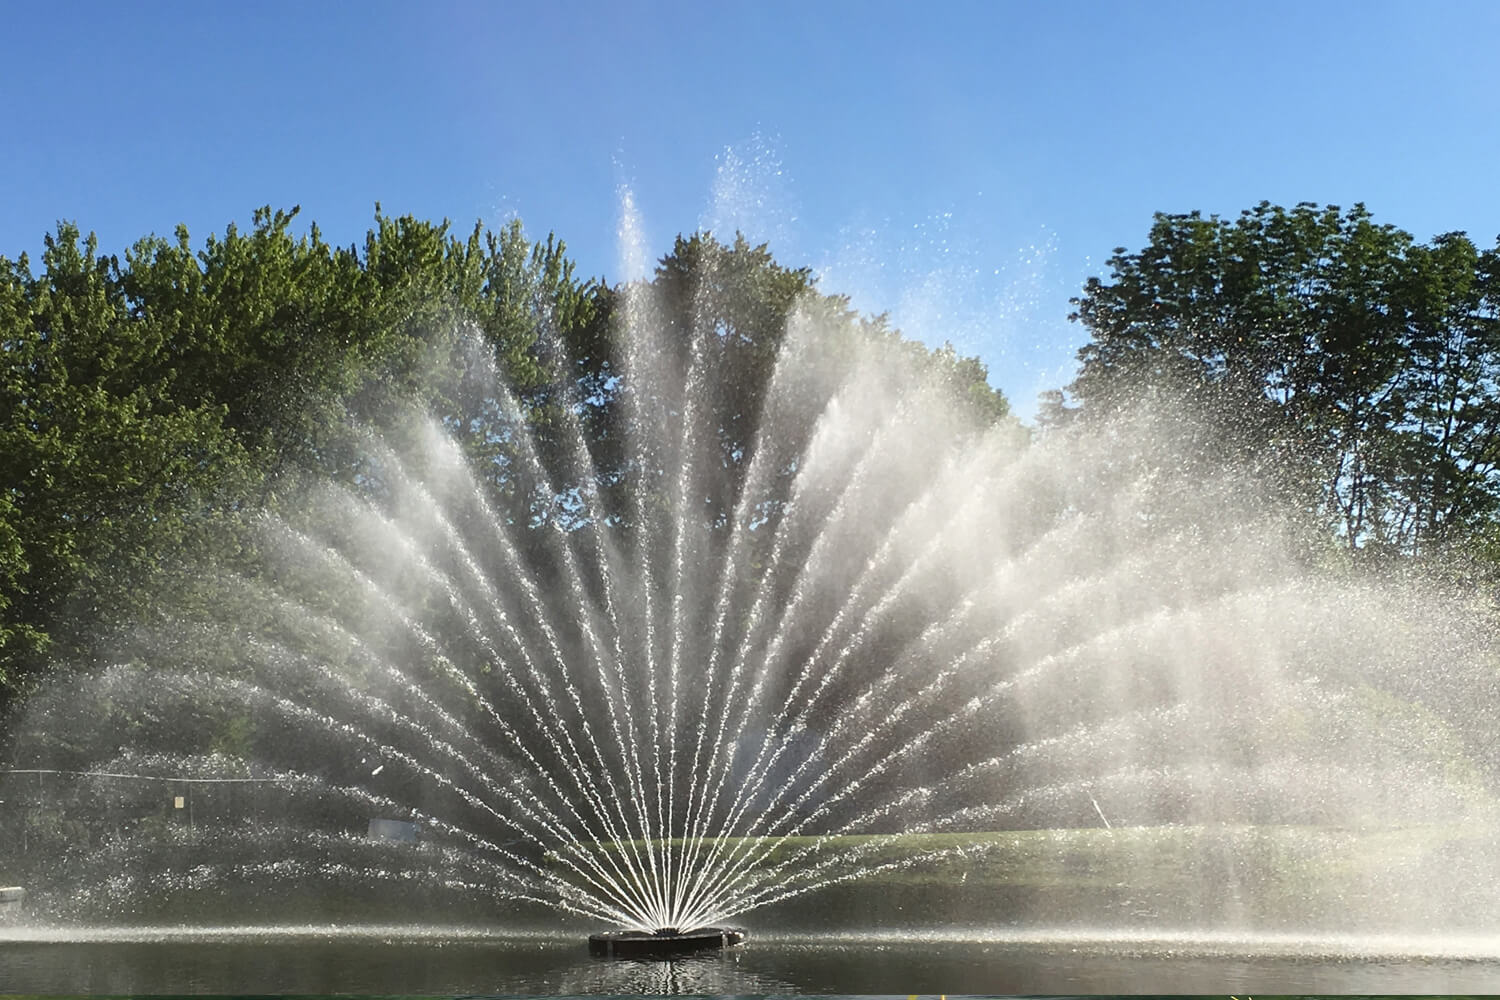 One of Otterbine's Aries Aerating Fountains